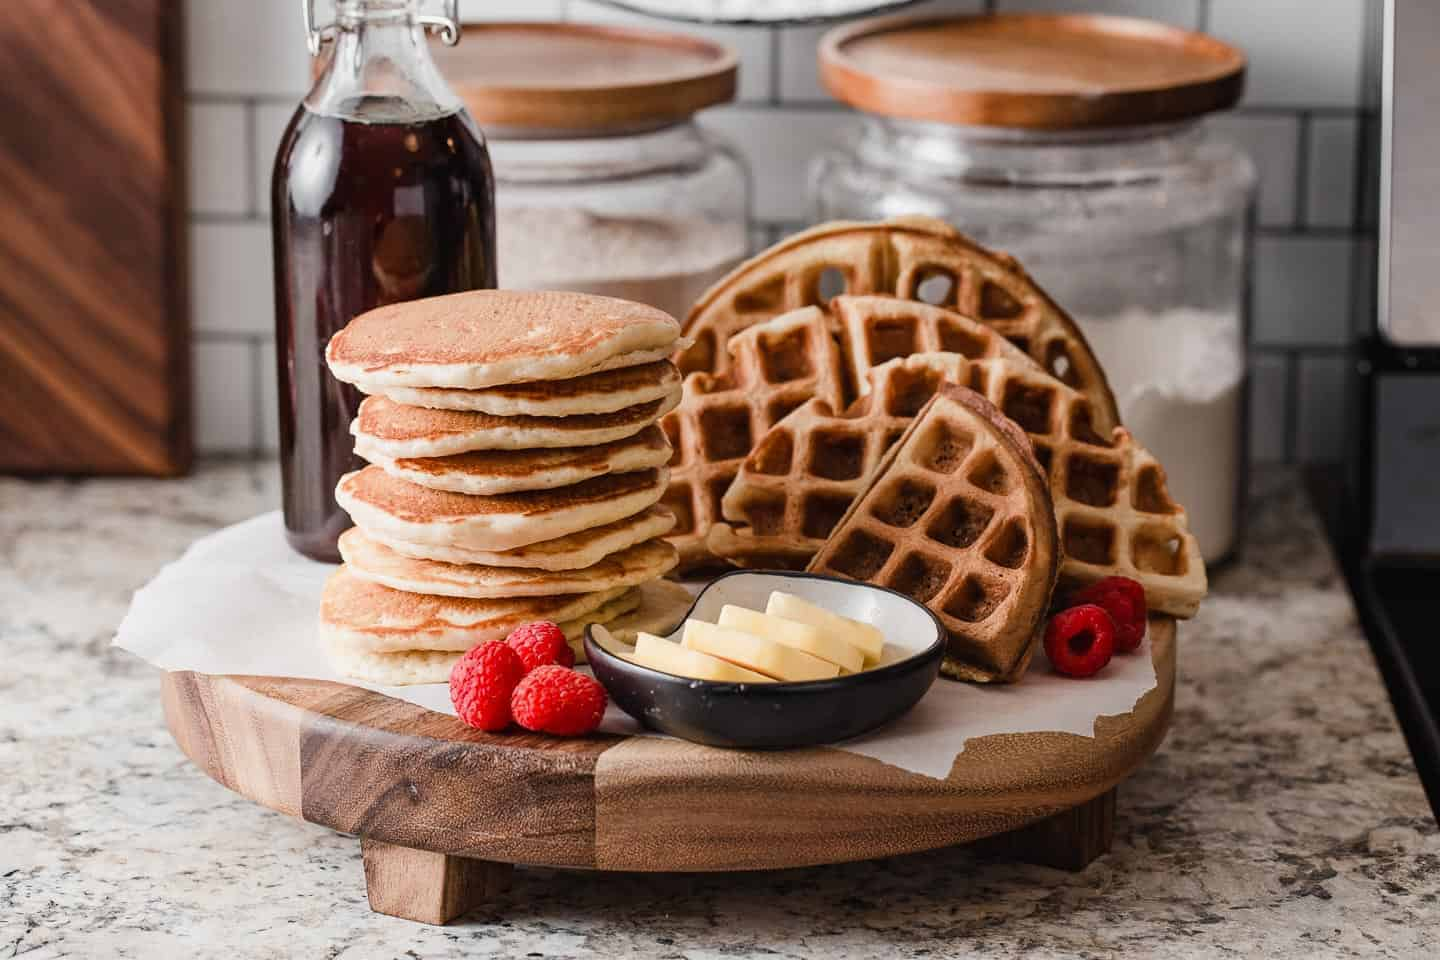 A platter of sourdough pancakes and waffles.